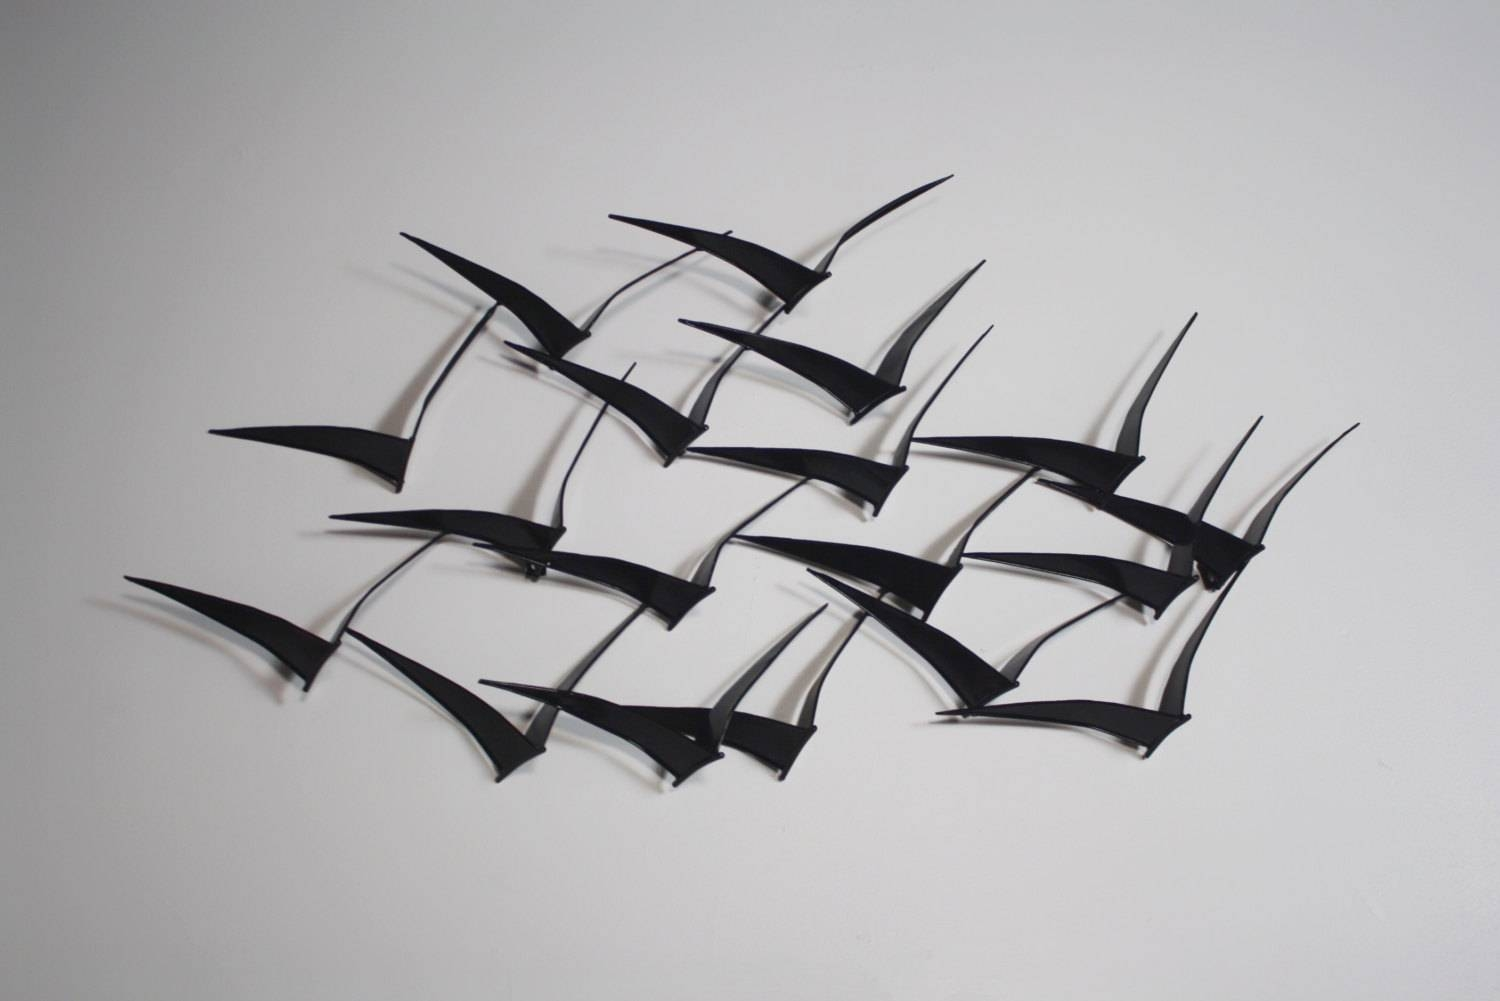 Superb Metal Sculpture Wall Art Birds Birds In Flight Metal Trendy In Recent Birds In Flight Metal Wall Art (View 4 of 30)